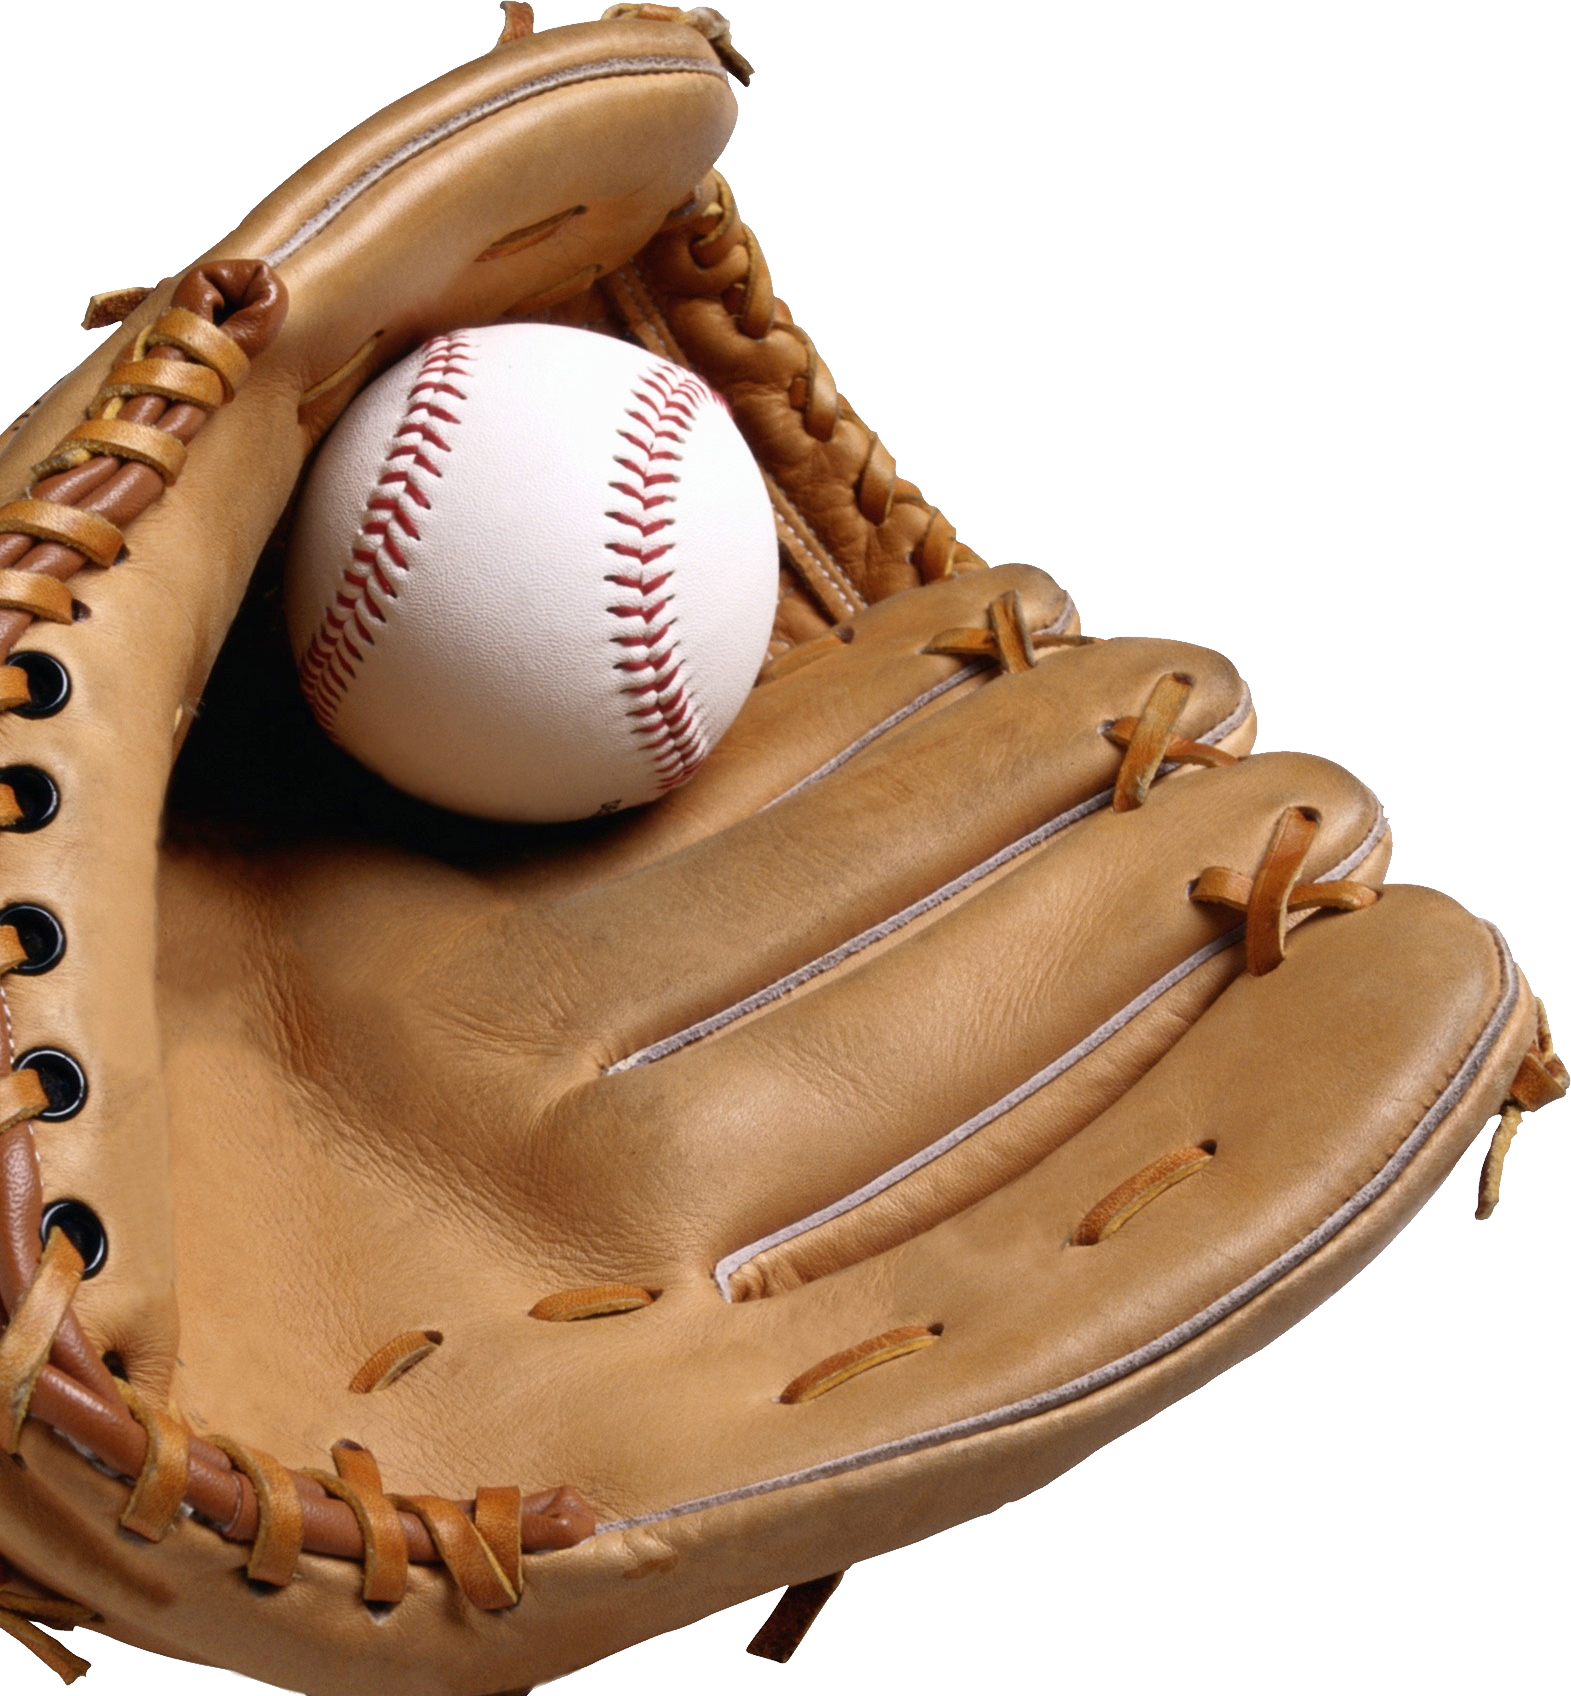 Baseball and glove clipart vector Baseball Gloves PNG Image - PurePNG | Free transparent CC0 PNG Image ... vector